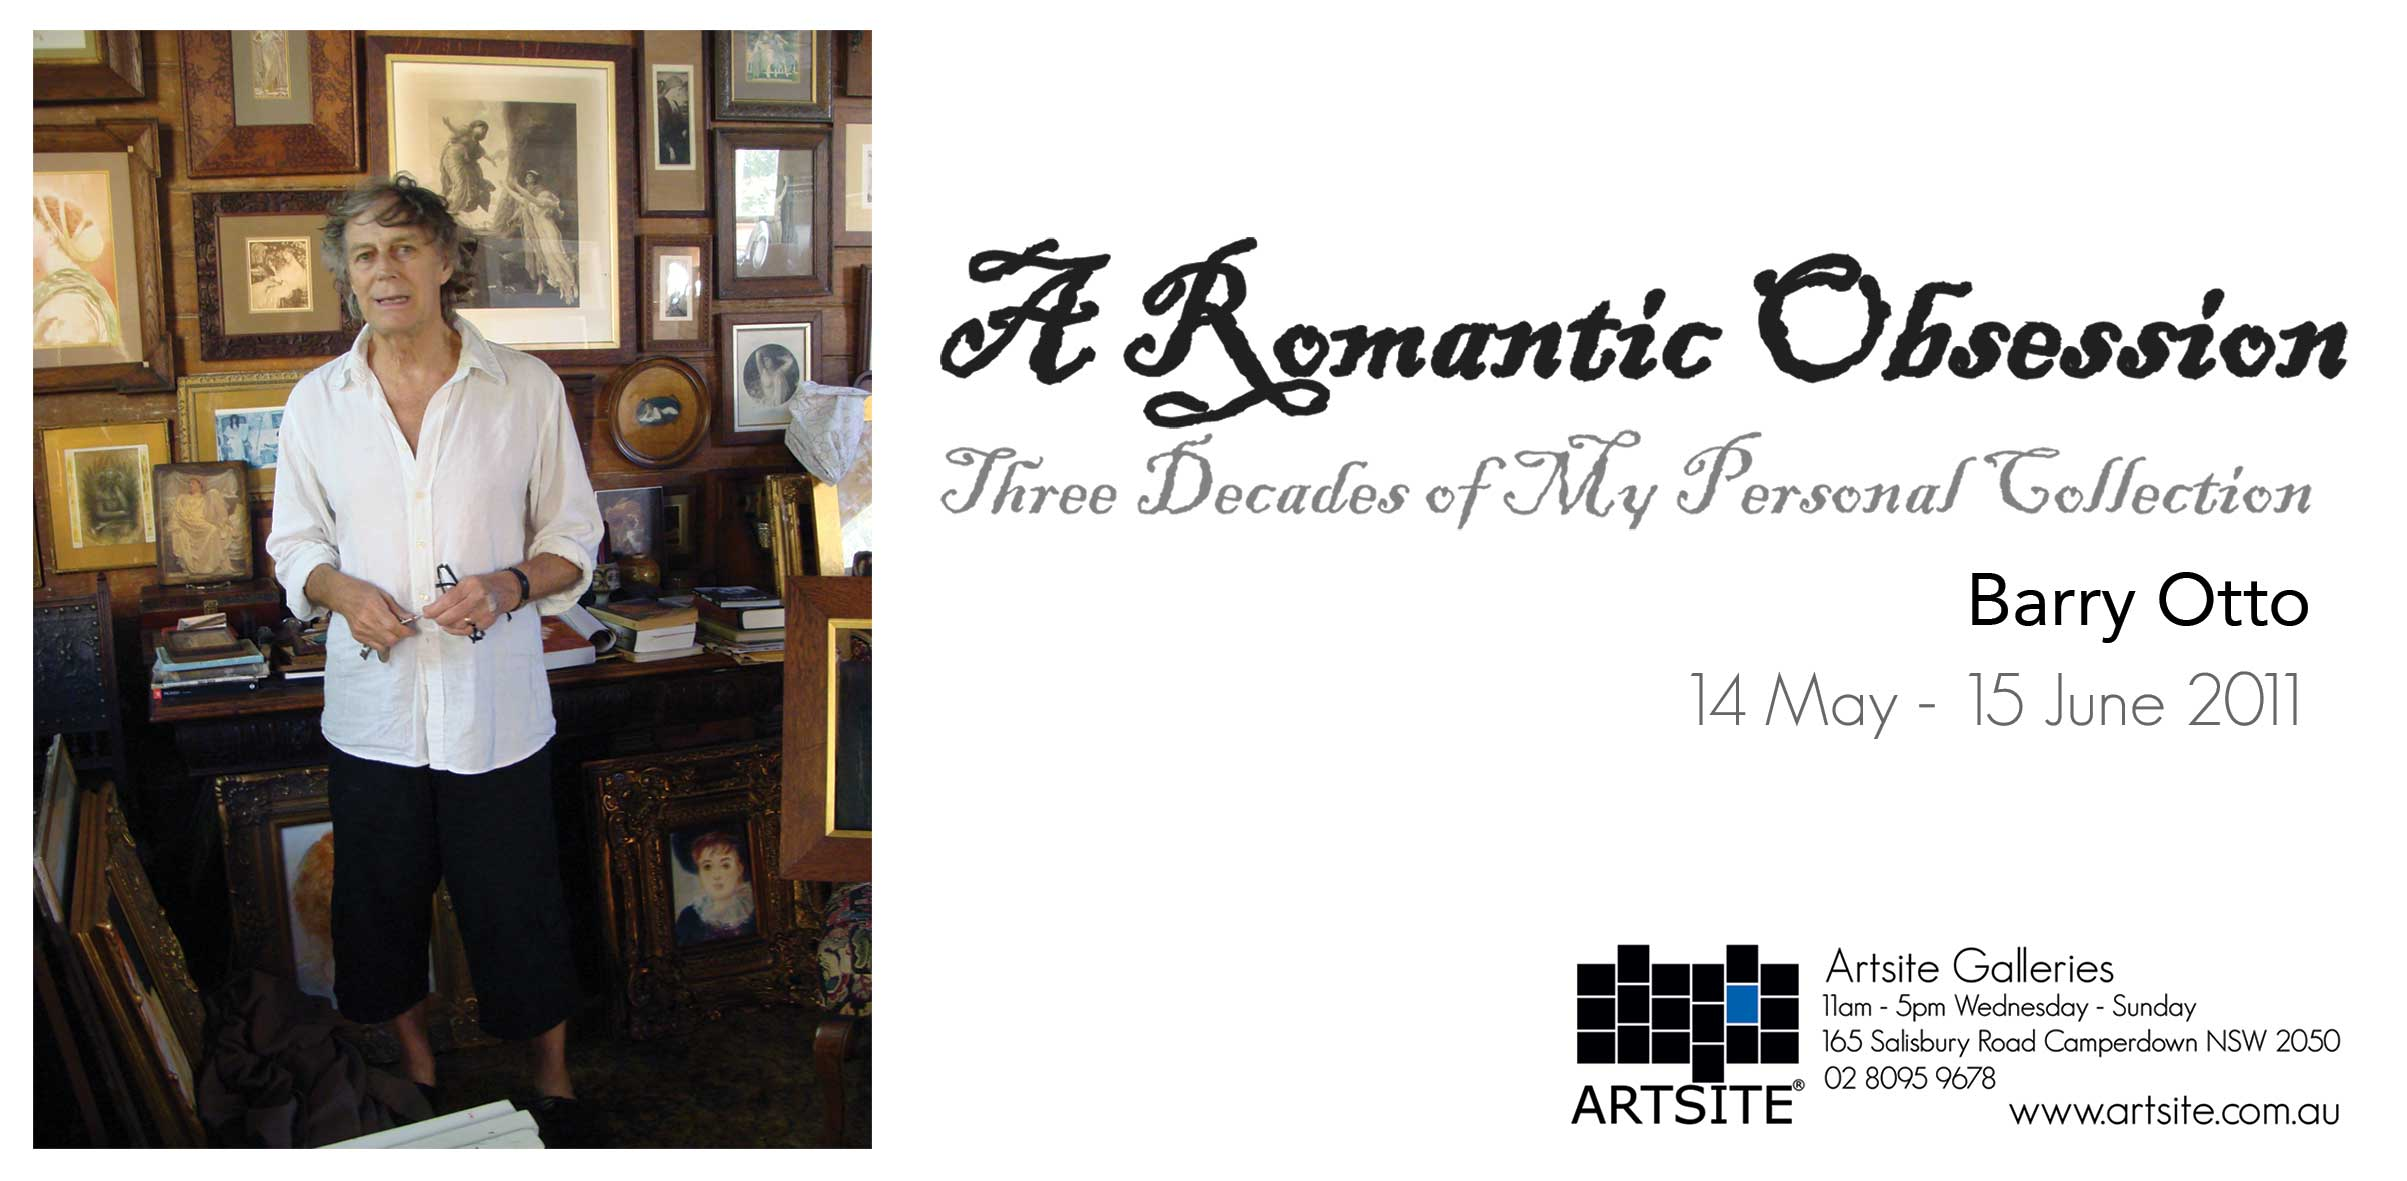 View Exhibition at Artsite Gallery, 14 May - 15 June 2011: Barry Otto - A Romantic Obsession